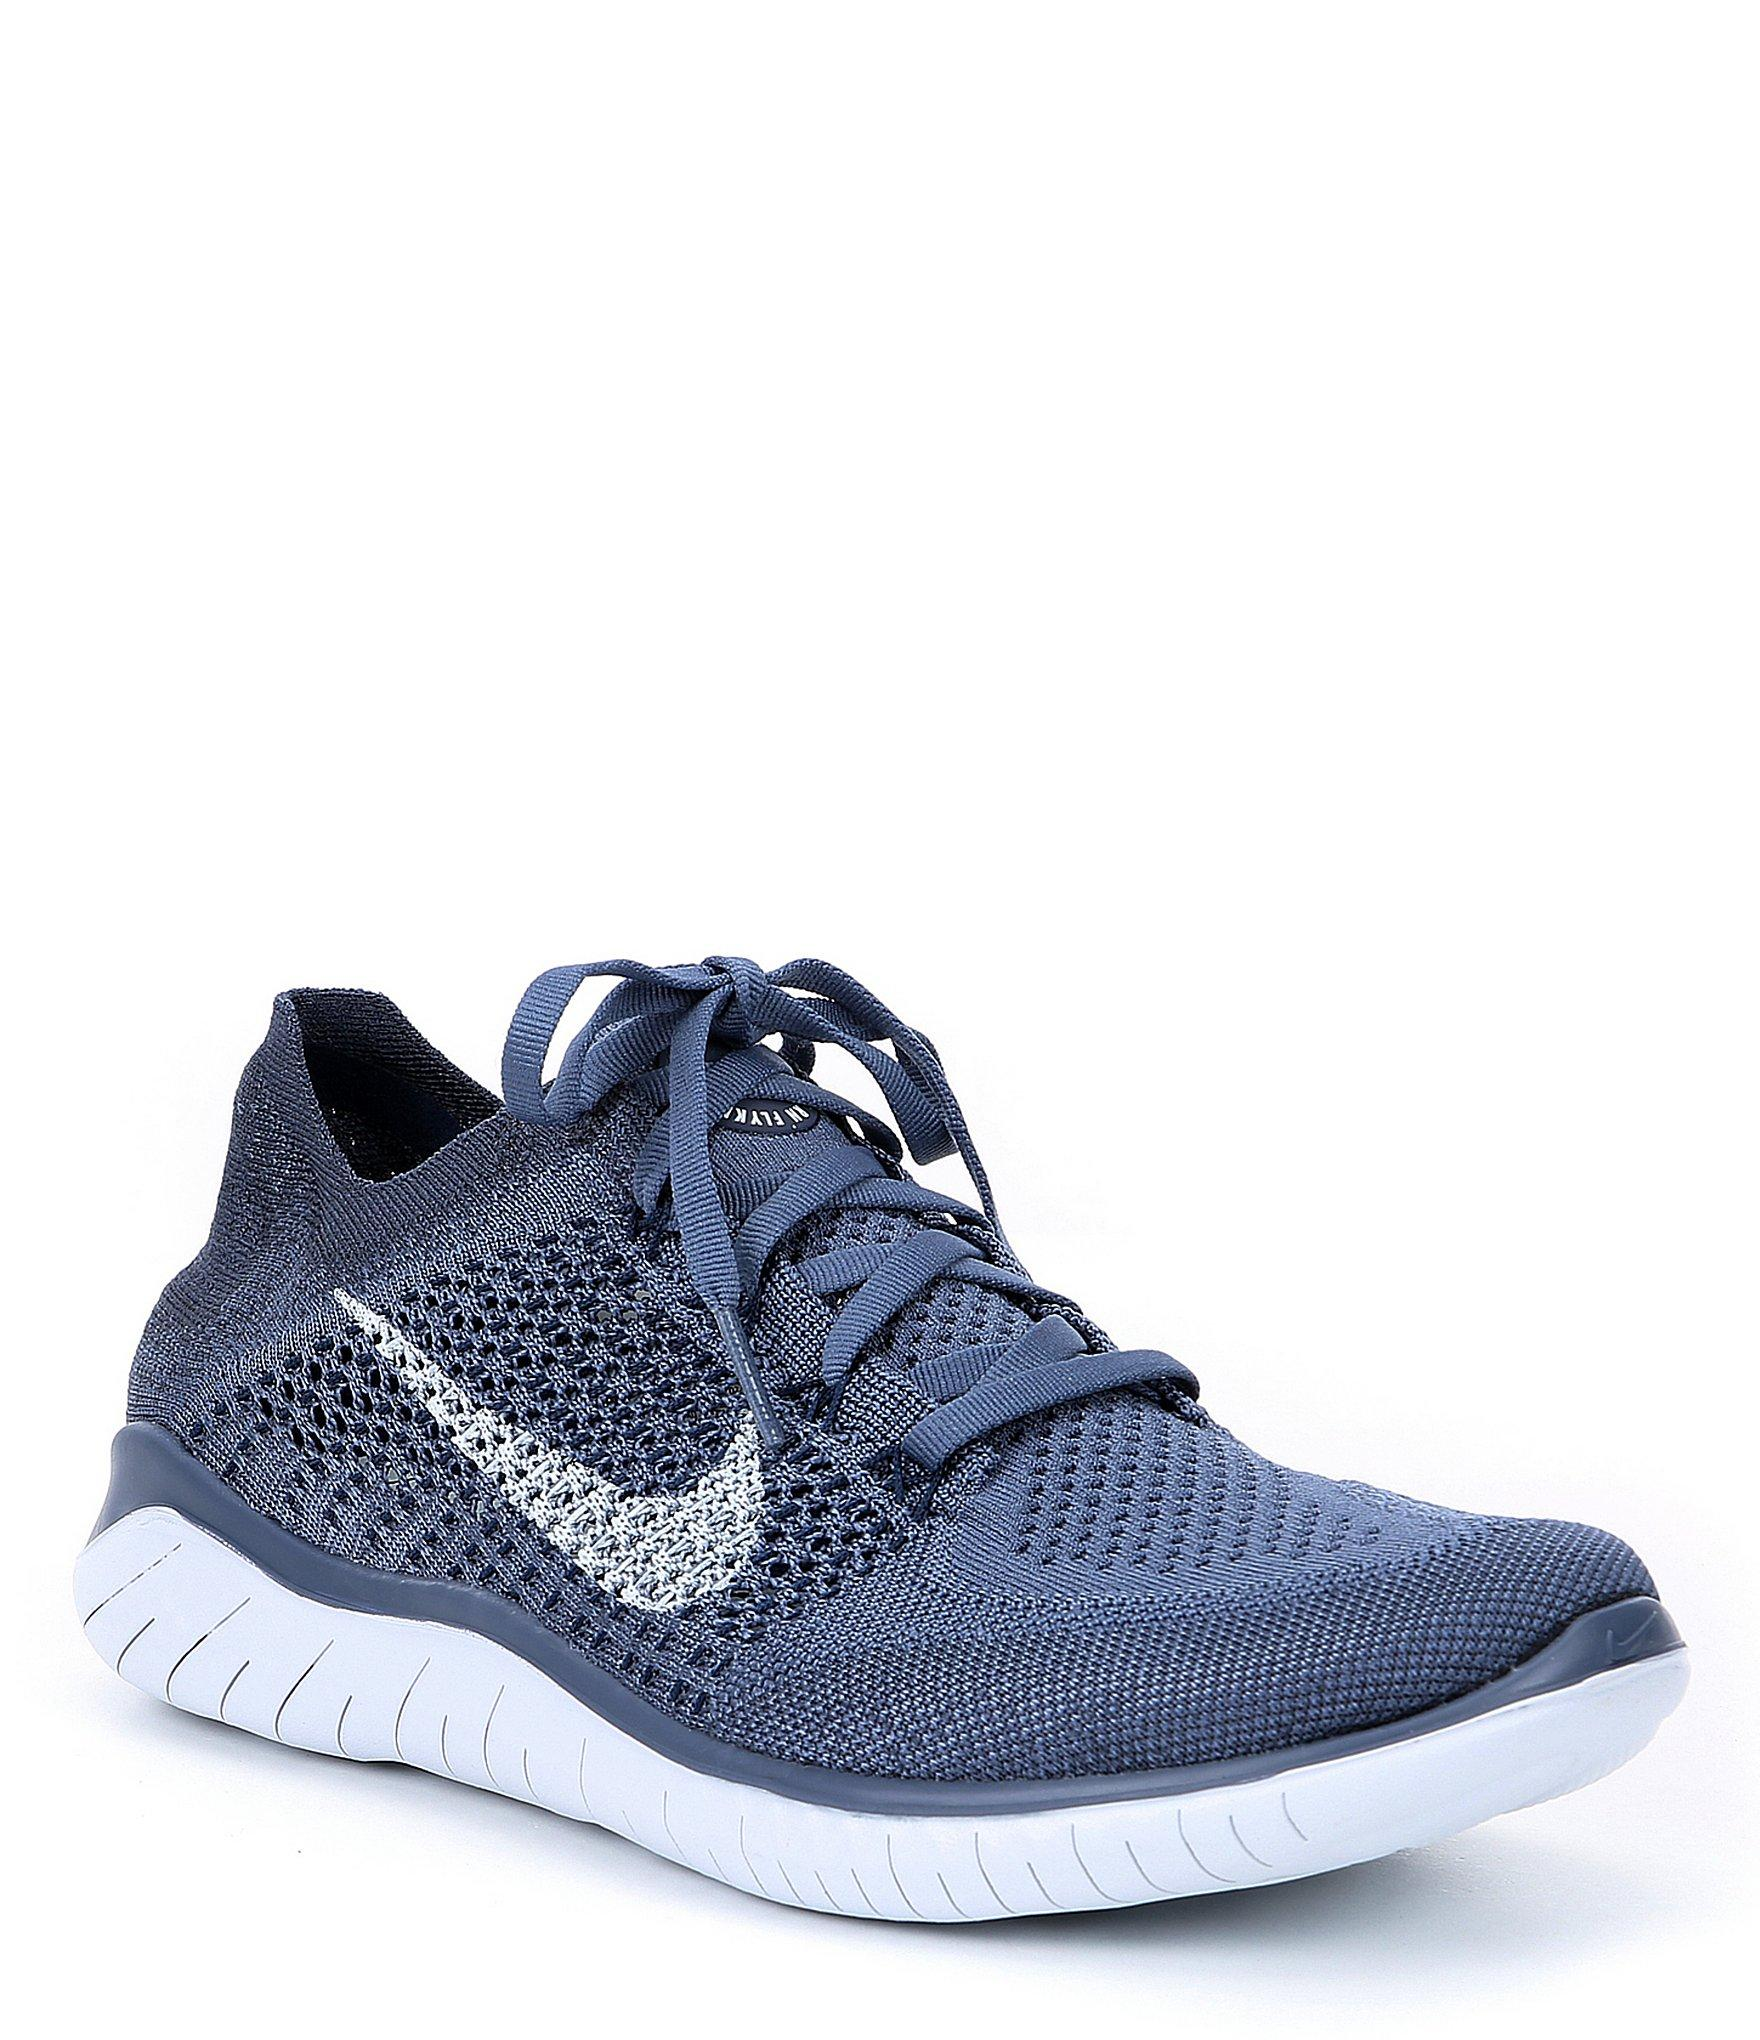 732b6436f0ff Lyst - Nike Men s Free Rn Flyknit Running Shoes in Blue for Men